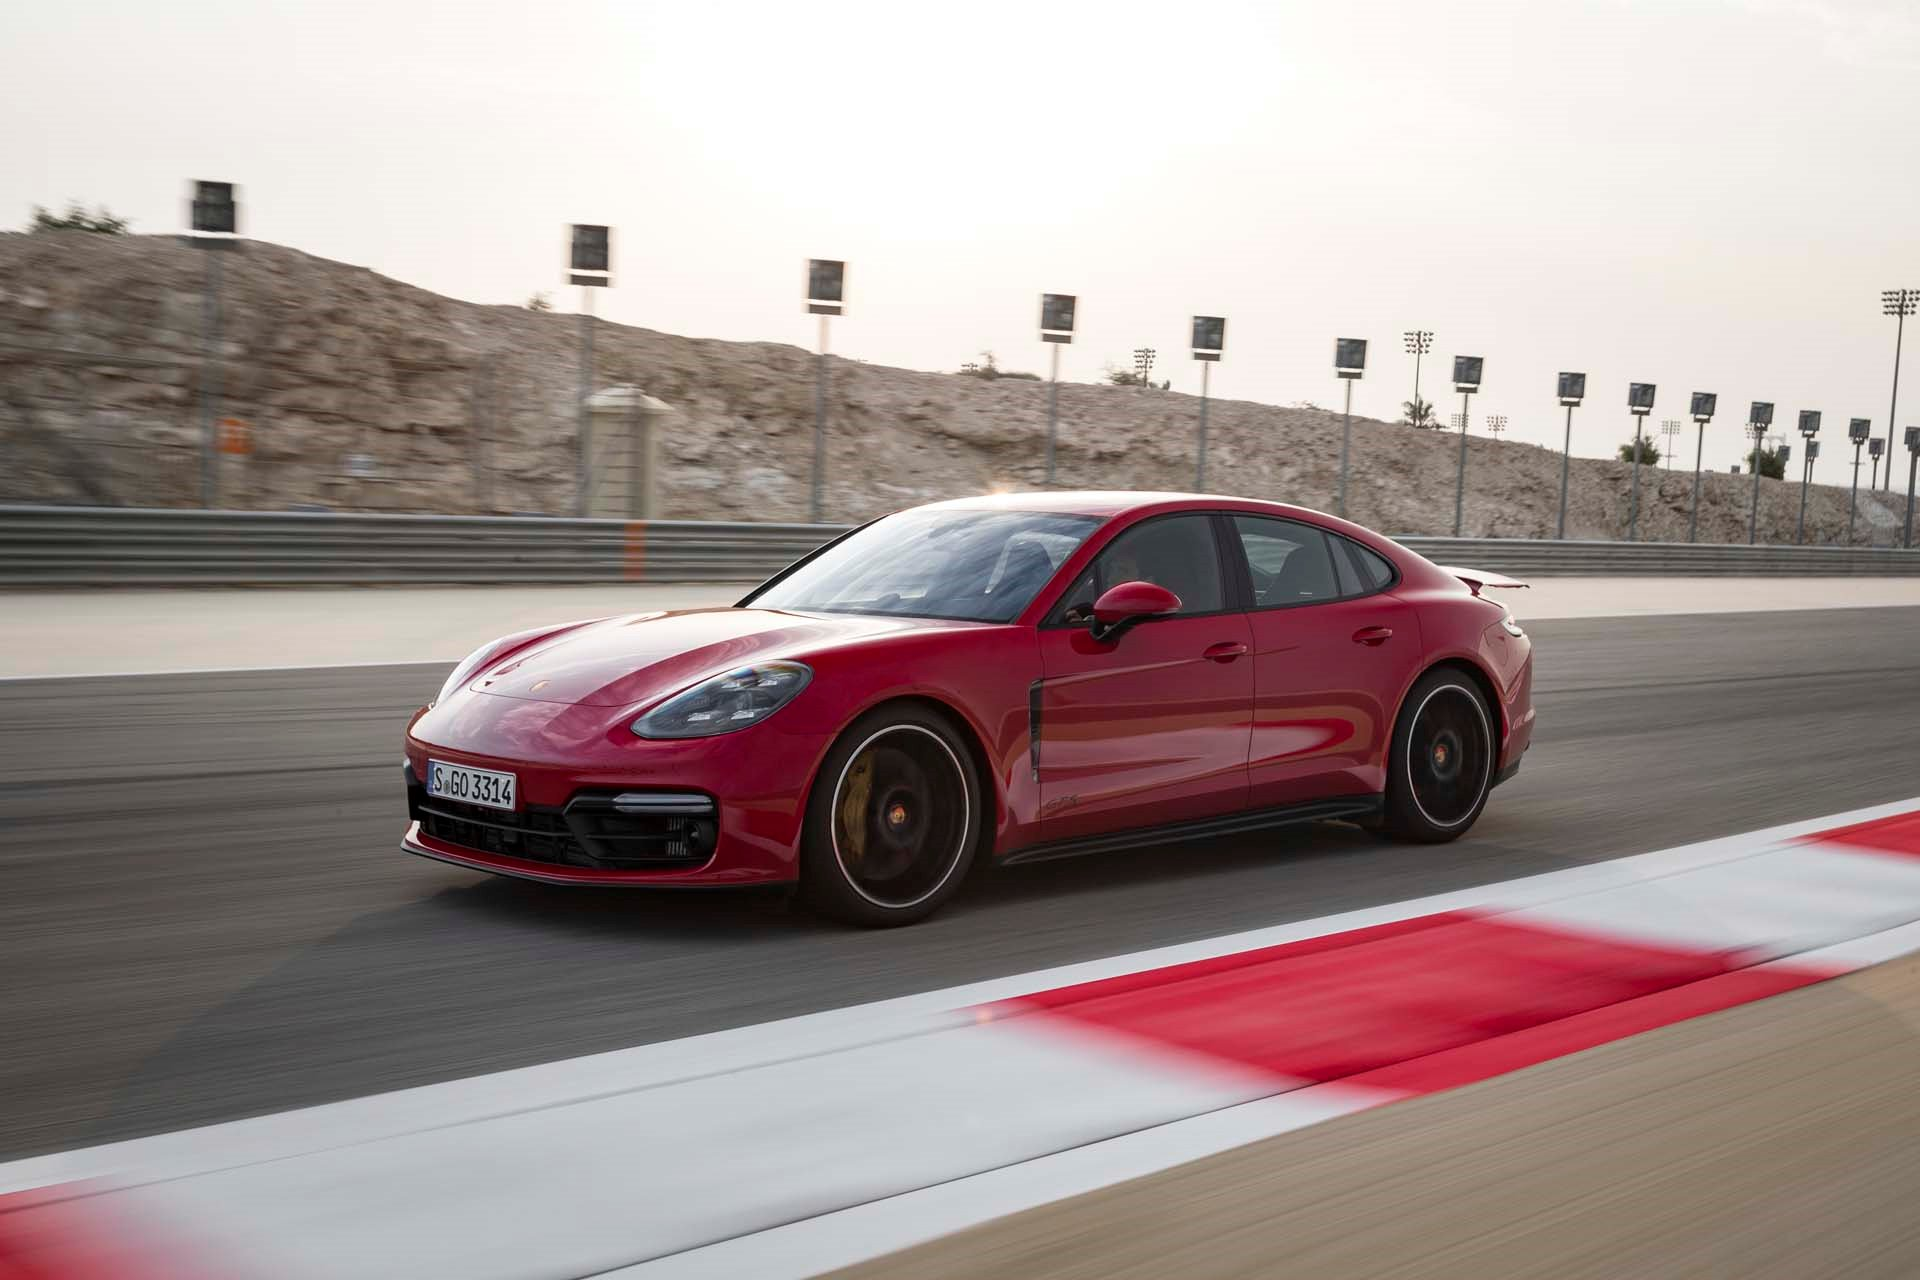 New 2019 Porsche-Panamera GTS Panamera GTS for sale $128,300 at M and V Leasing in Brooklyn NY 11223 1